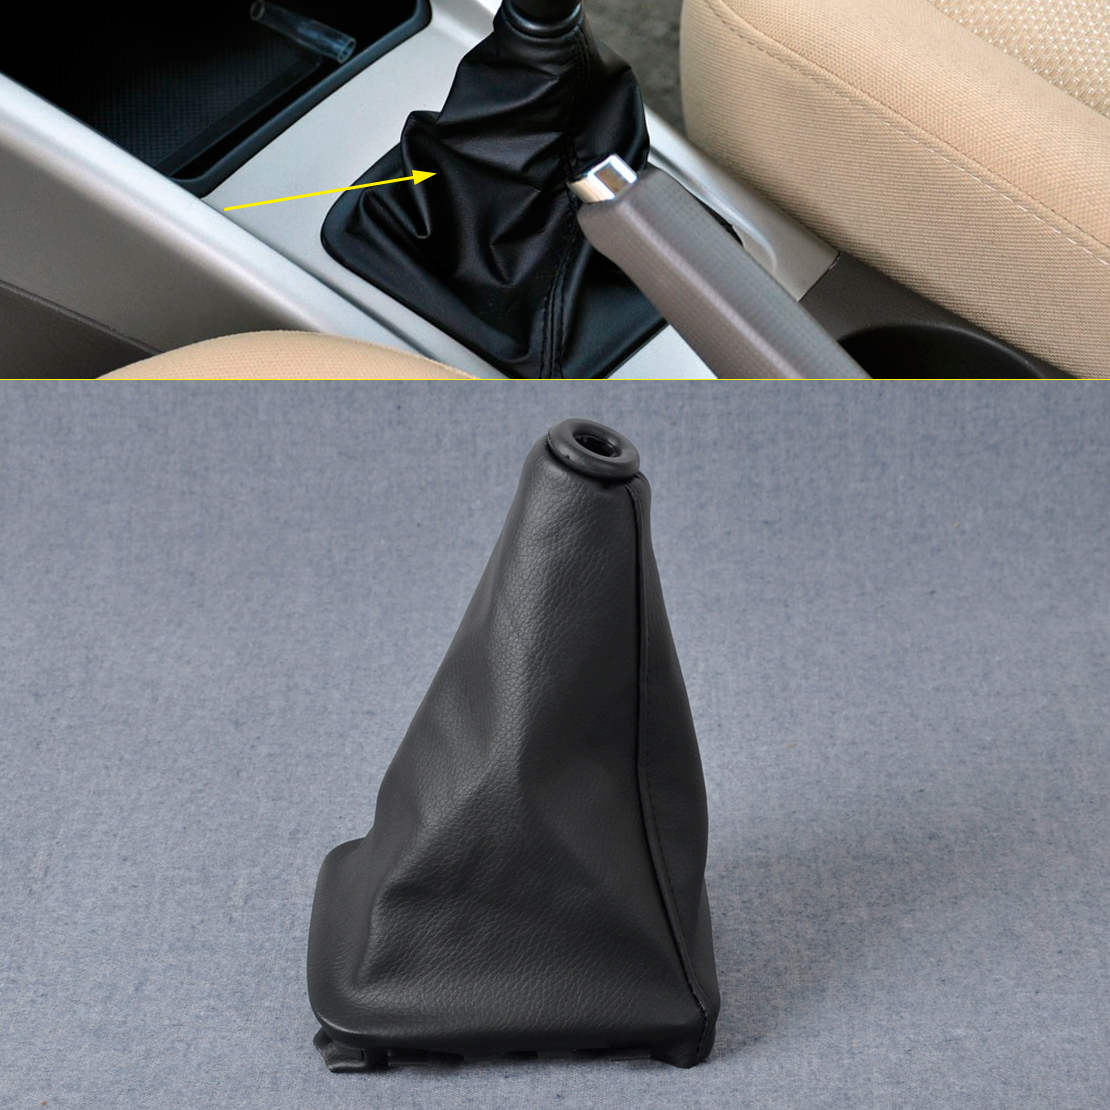 CITALL PU Leather Gear Stick Shift Knob Cover Boot Gaiter For 2000 2001 2002 2003 Hyundai Elantra/Avante XD ветровики korea hyundai elantra 2001 2006 avante xd sd